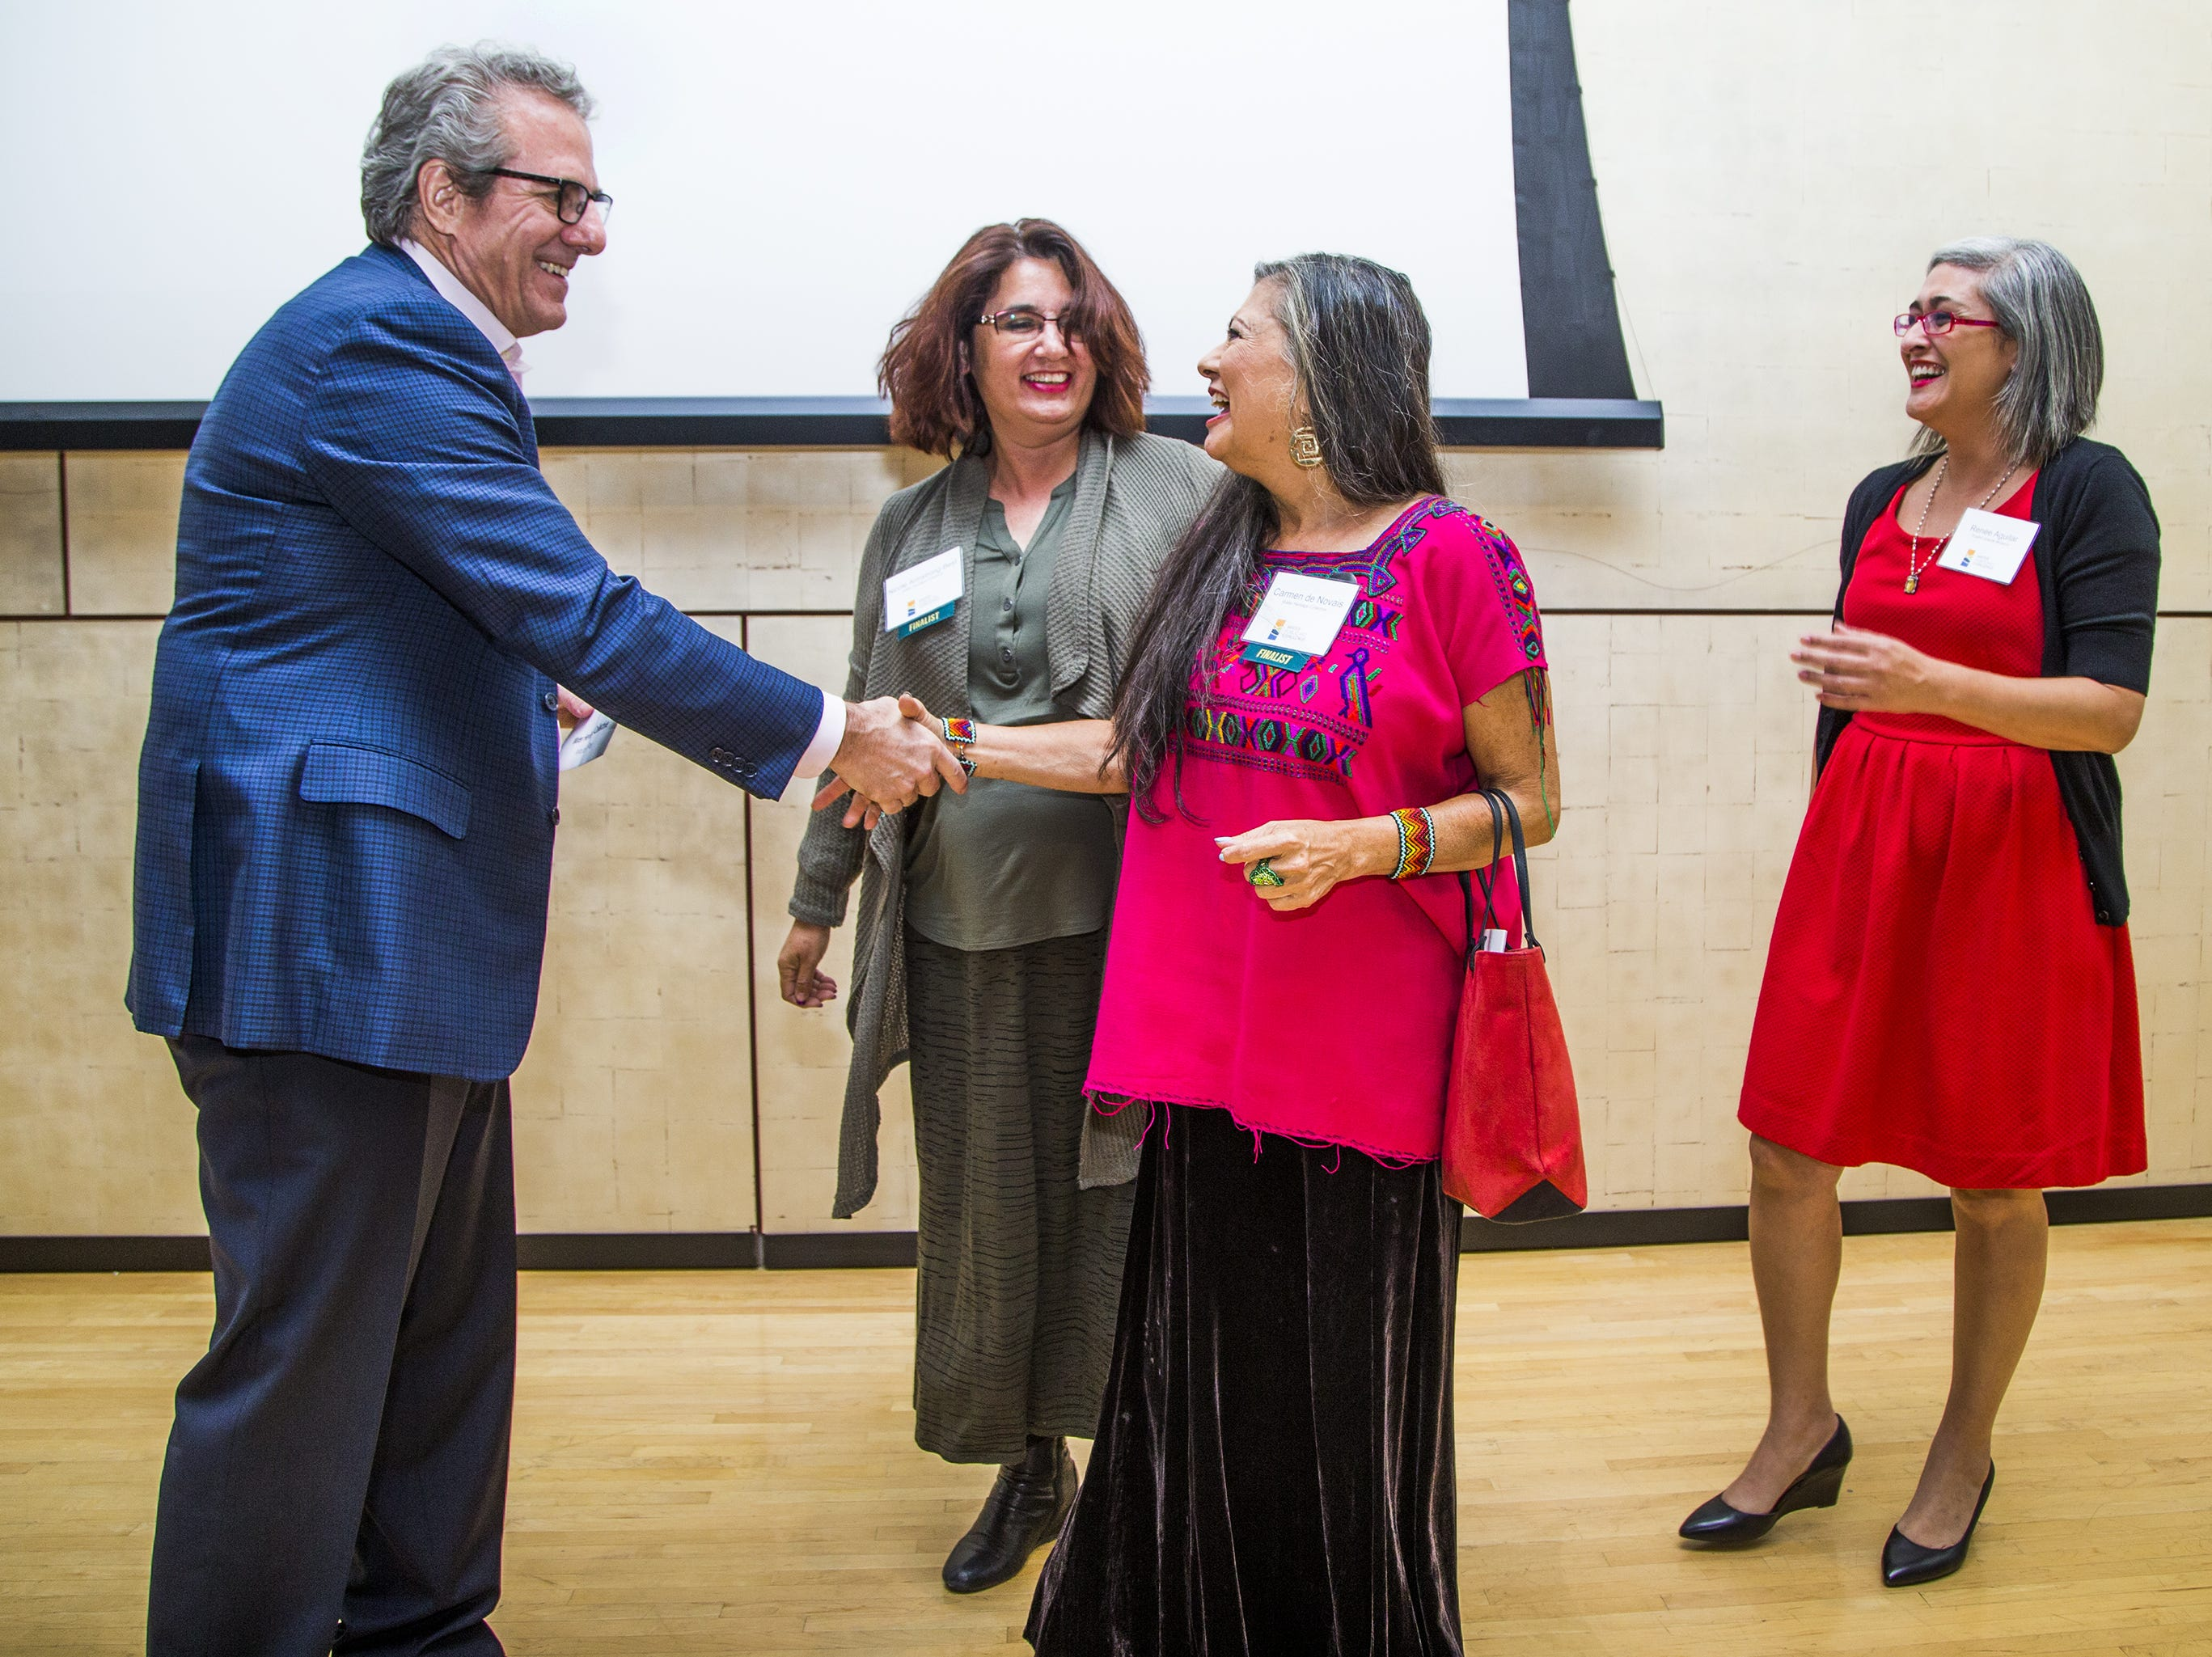 Steve Seleznow, president and CEO of the Arizona Community Foundation, left, presents a $50,000 check to the Water Heritage Collective team that created Portal to the Past as their entry for the Water Public Art Challenge. From left to right are; Seleznow, Nicole Armstrong-Best, Carmen Guerrero and Renee Aguilar. The team was one of five that received $50,000 each to realize their project.